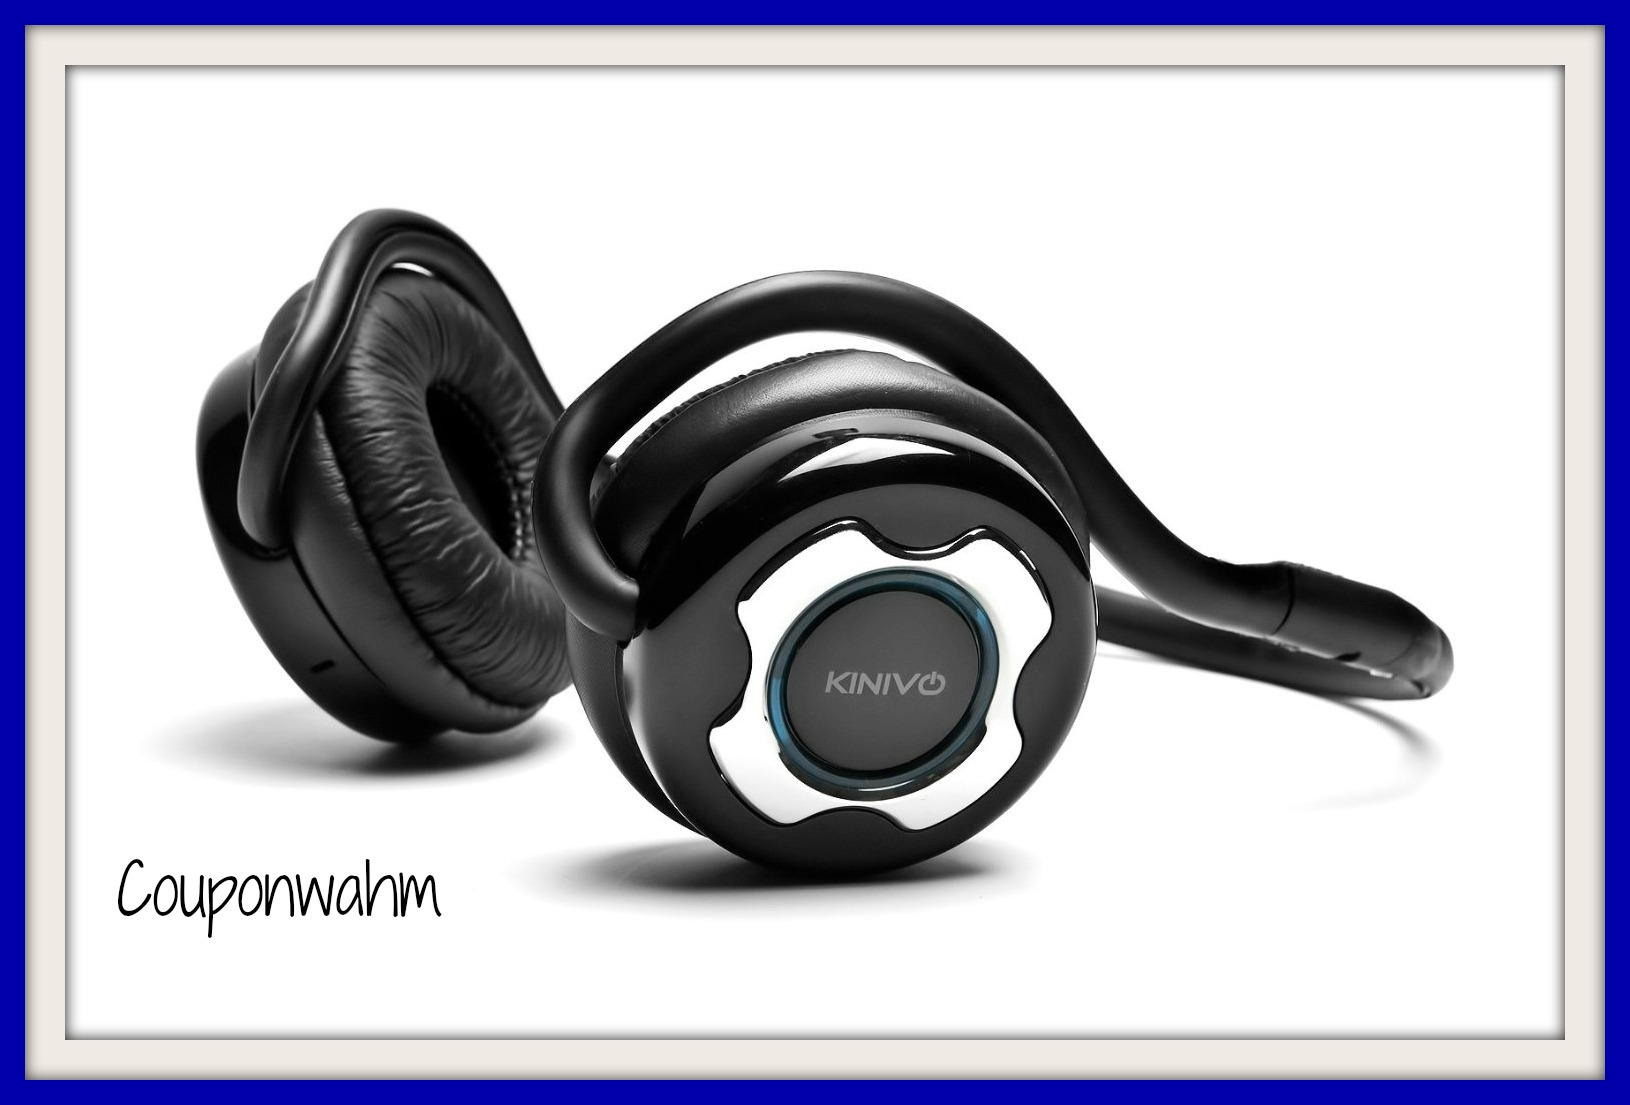 Kinivo BTH220 Bluetooth Stereo Headphone Makes The Perfect Father's Day Gift